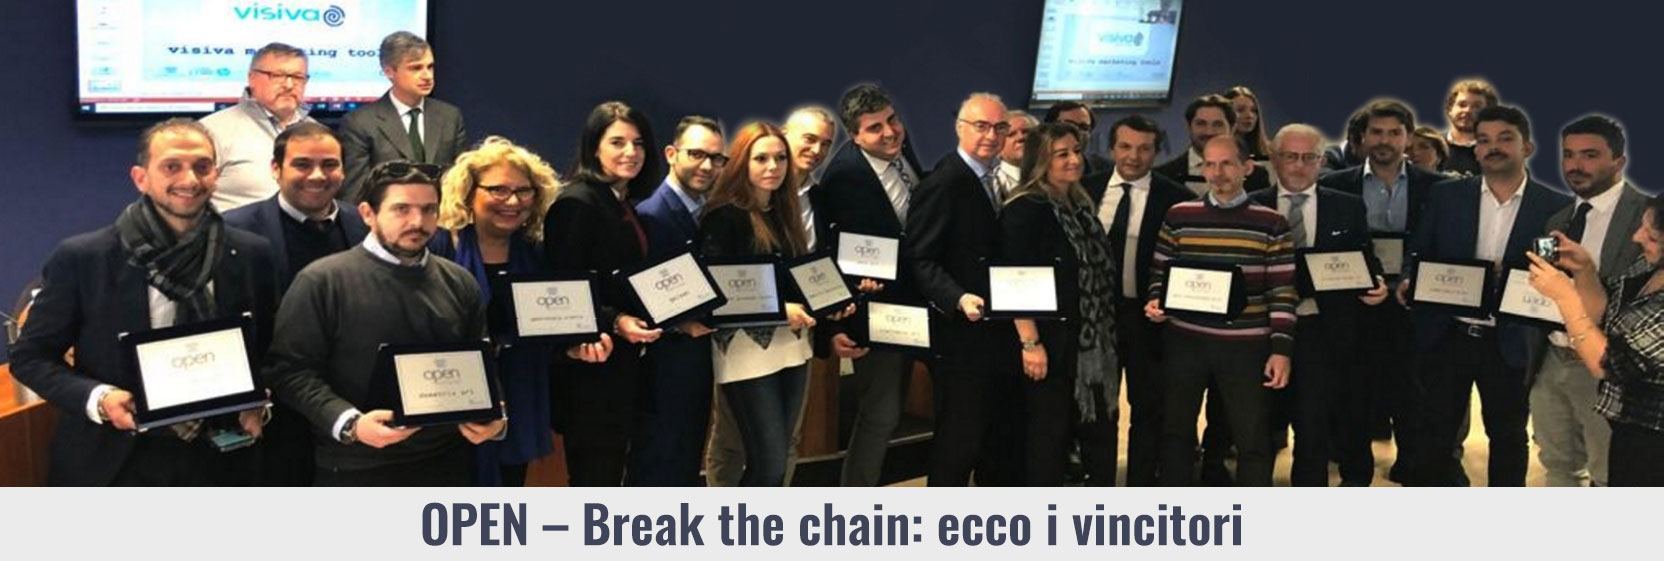 Open Break the chain - i vincitori